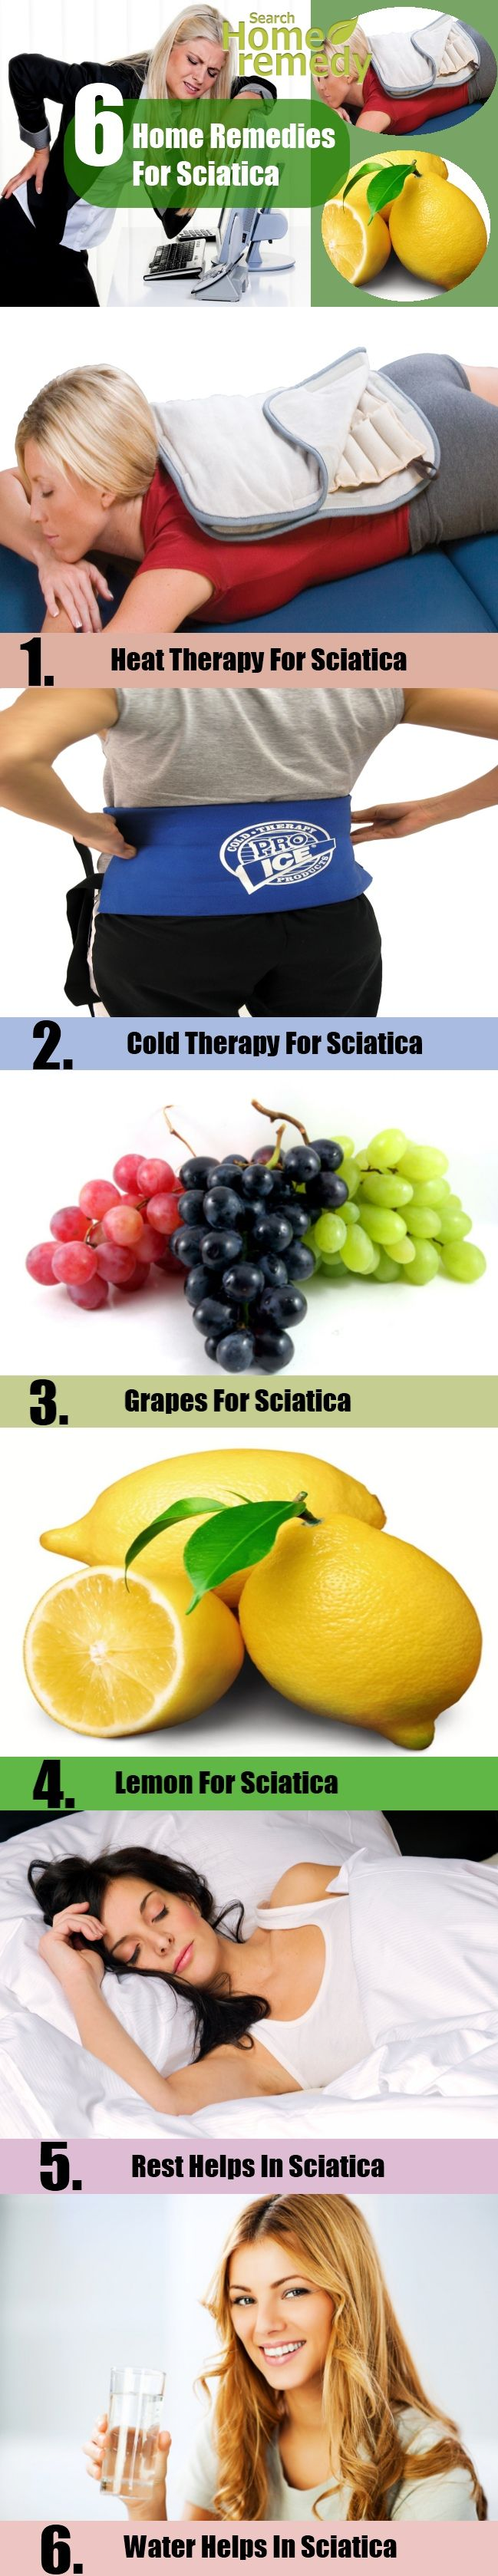 Best 6 Home Remedies For Sciatica. by searchhomeremedy.com